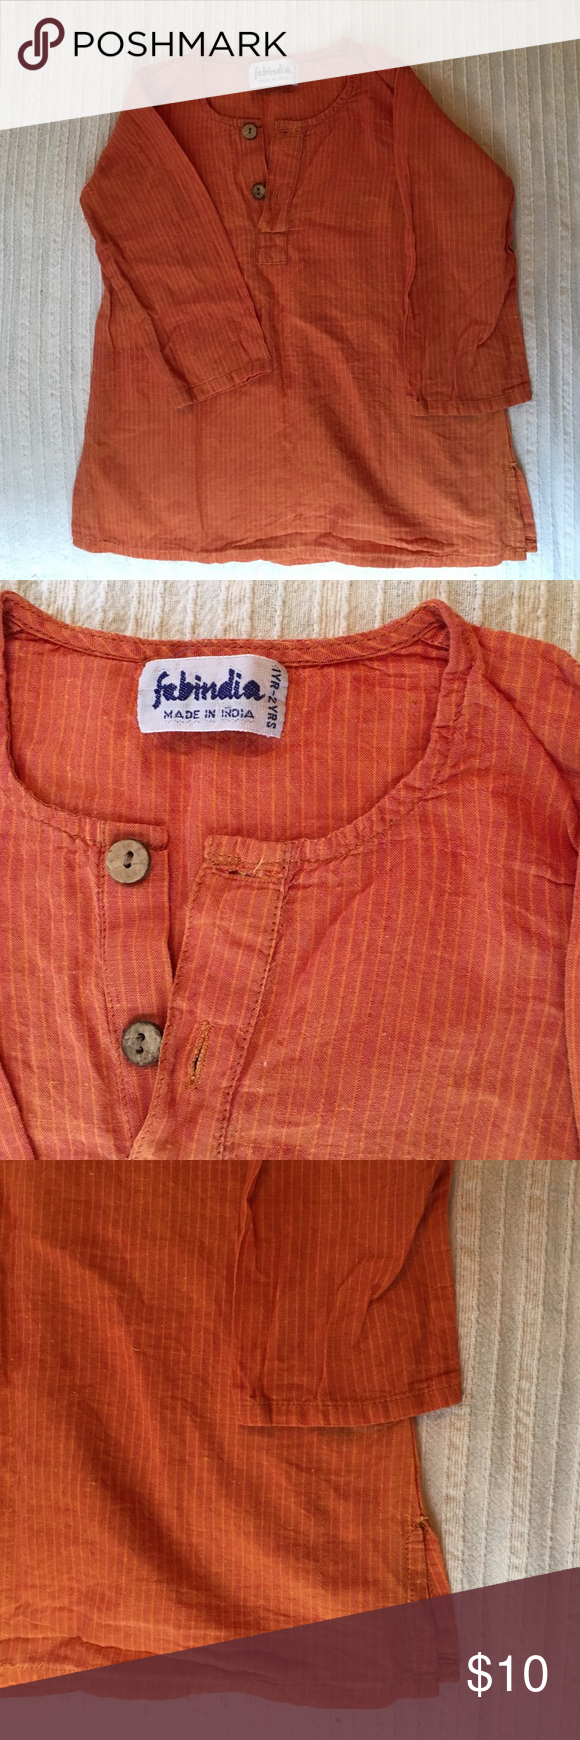 Tunic orange stripes shirt The perfect tunic to add to your little ones wardrobe. Lovely wooden buttons accent. Fabric is 100% cotton. Length 15 inches, chest 11 inches. Size says 1 - 2 years. Shirts & Tops Blouses